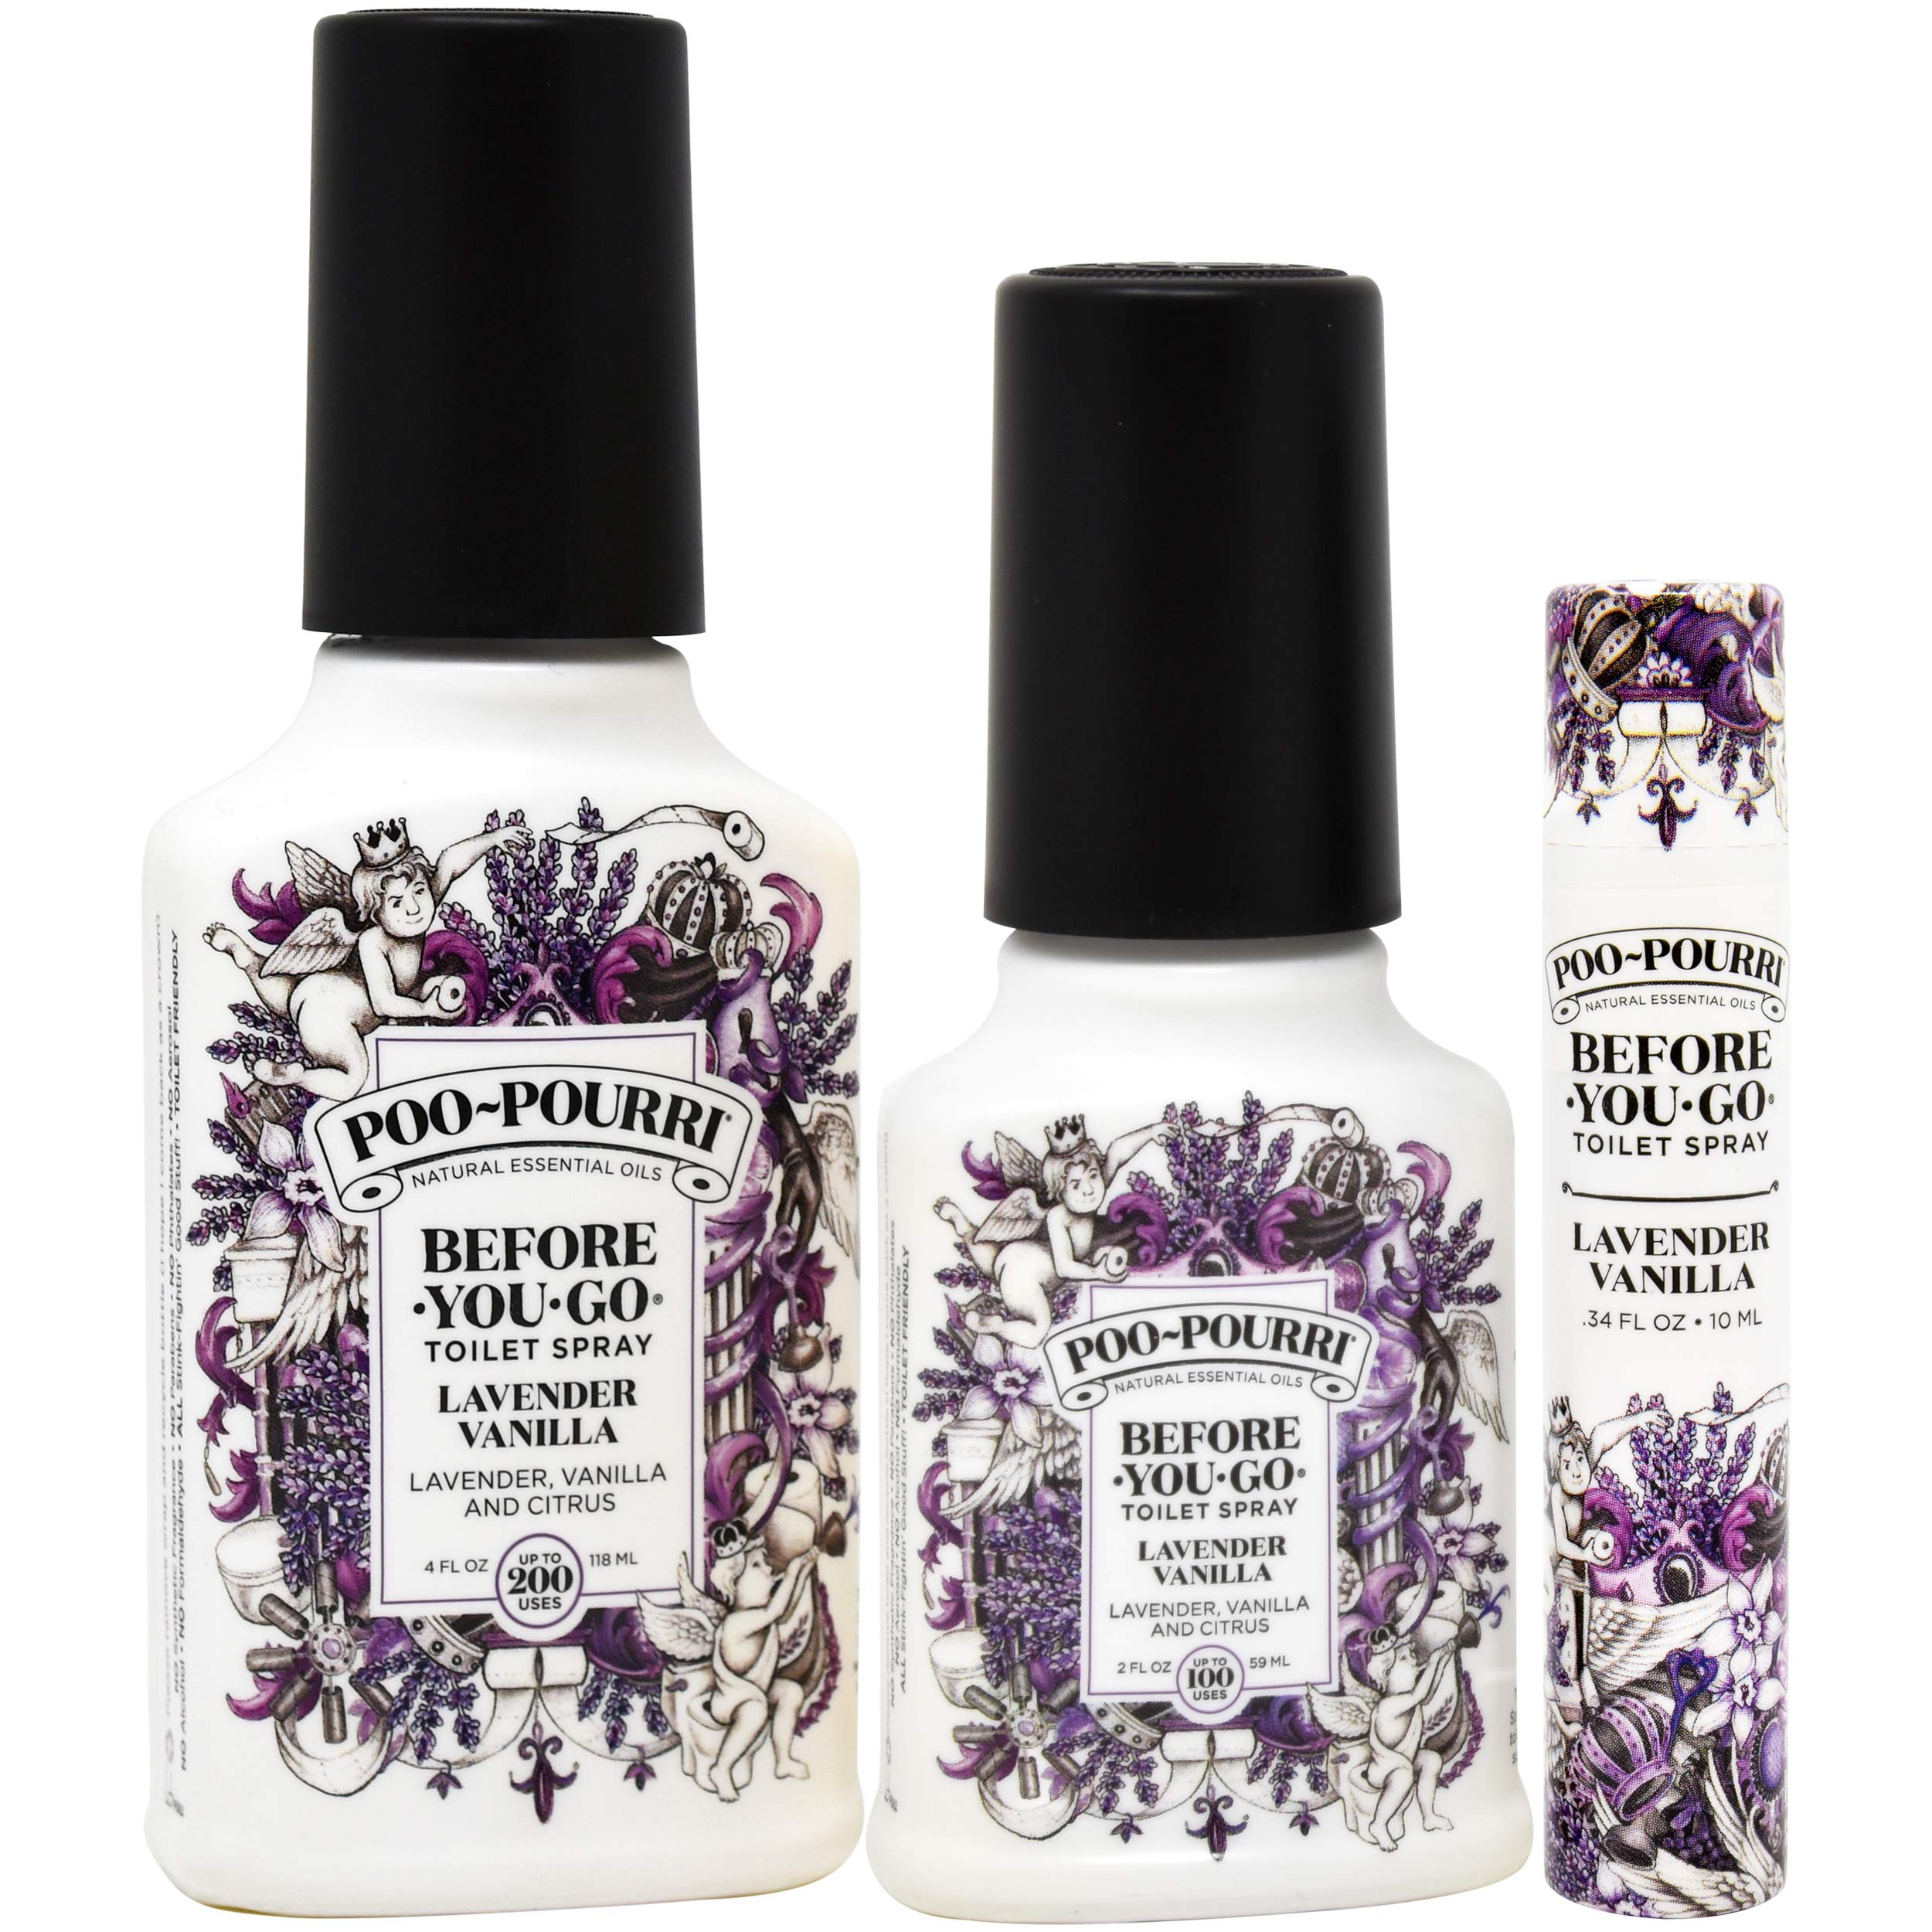 Poo-Pourri Lavender Vanilla 2 Ounce, 4 Ounce, Travel Size Spritzer, and Box by Poo-Pourri (Image #1)